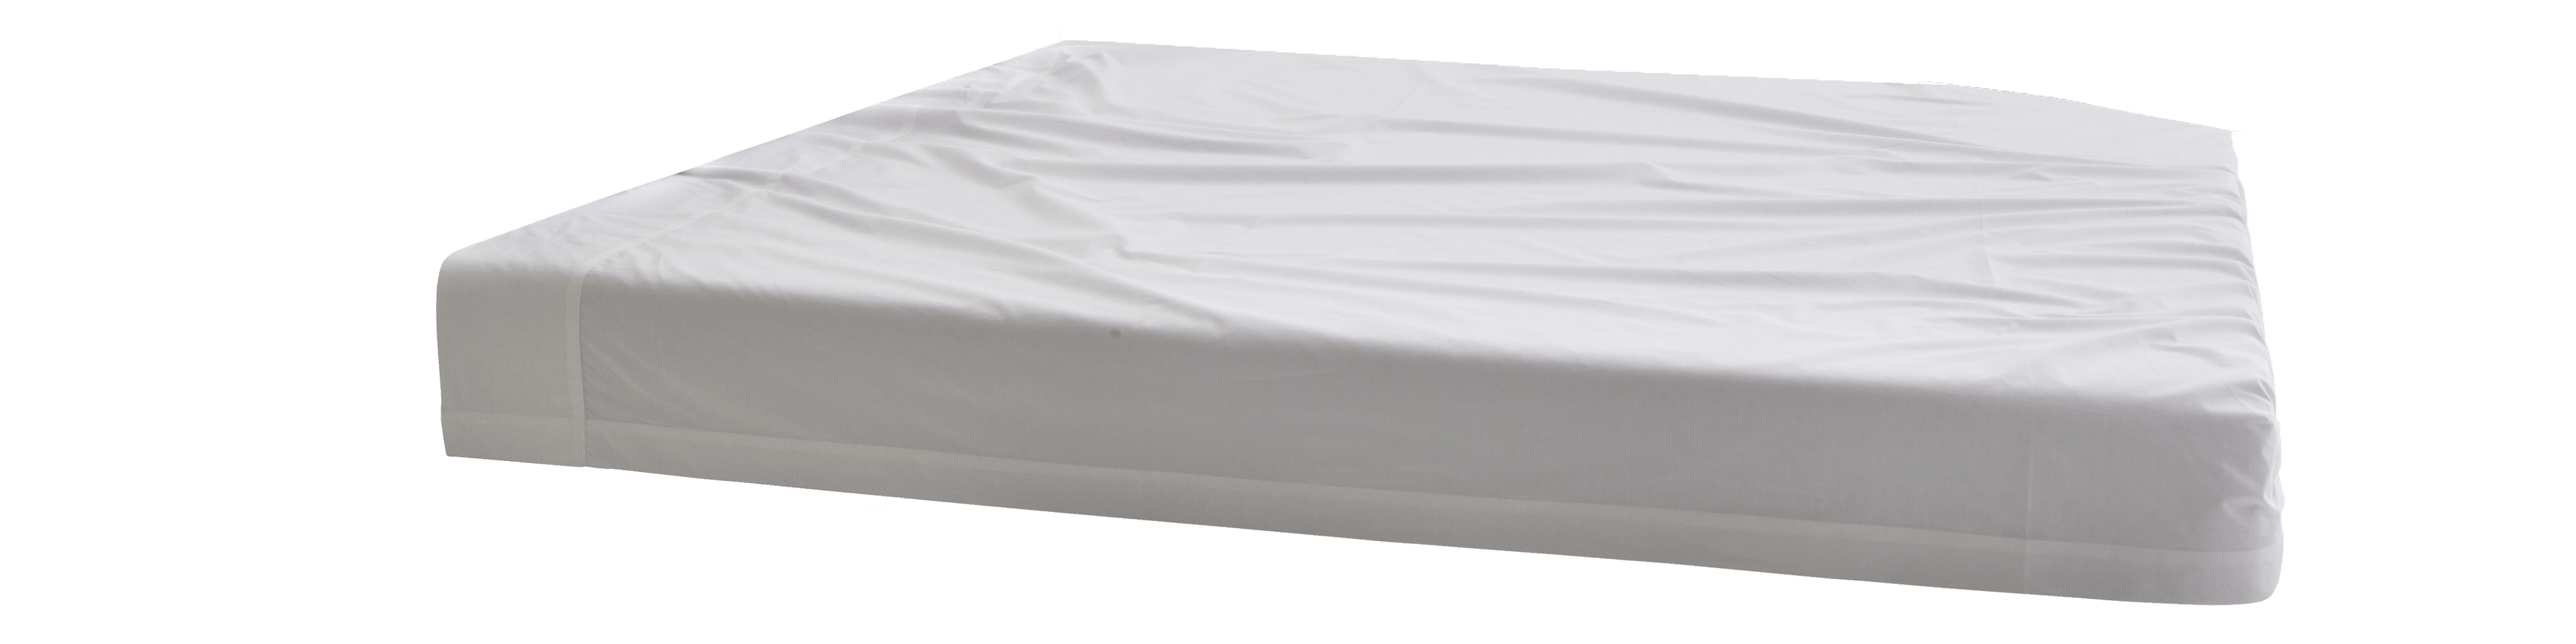 Click here for more information on our flat sheets